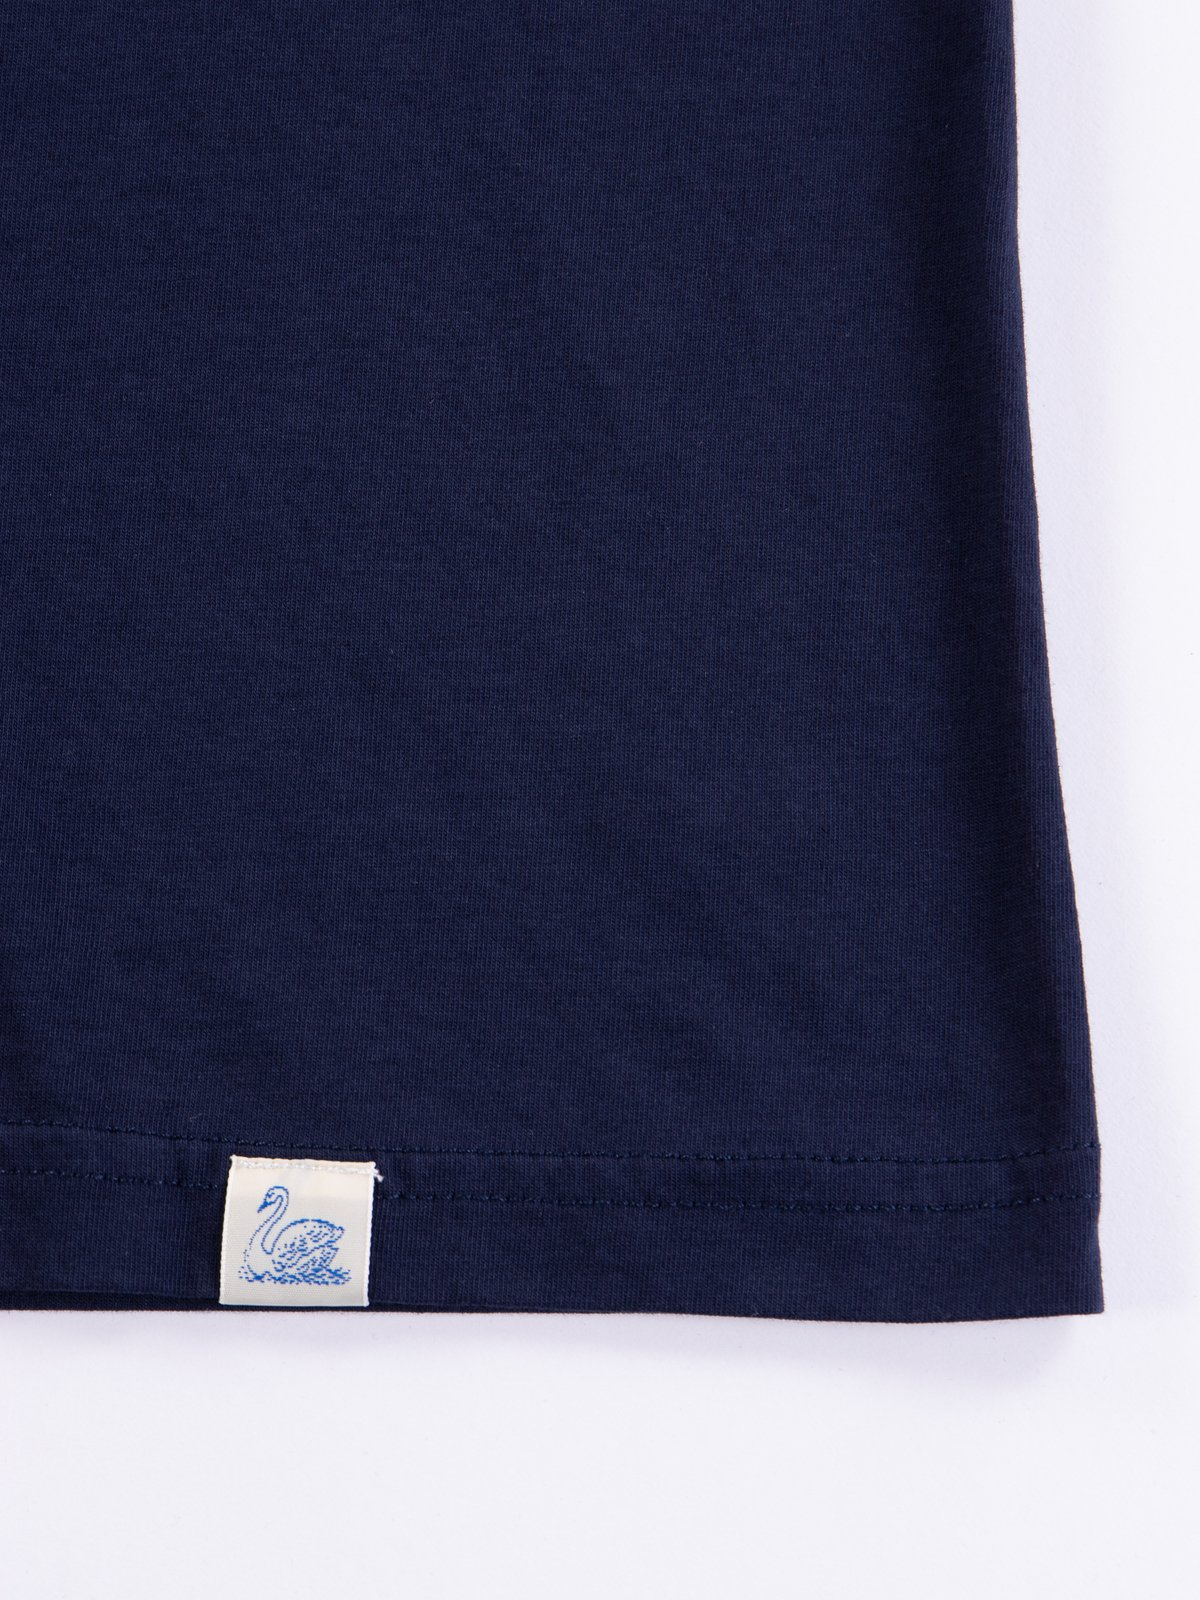 Deep Blue Good Basics CTP01 Pocket Crew Neck Tee - Image 4